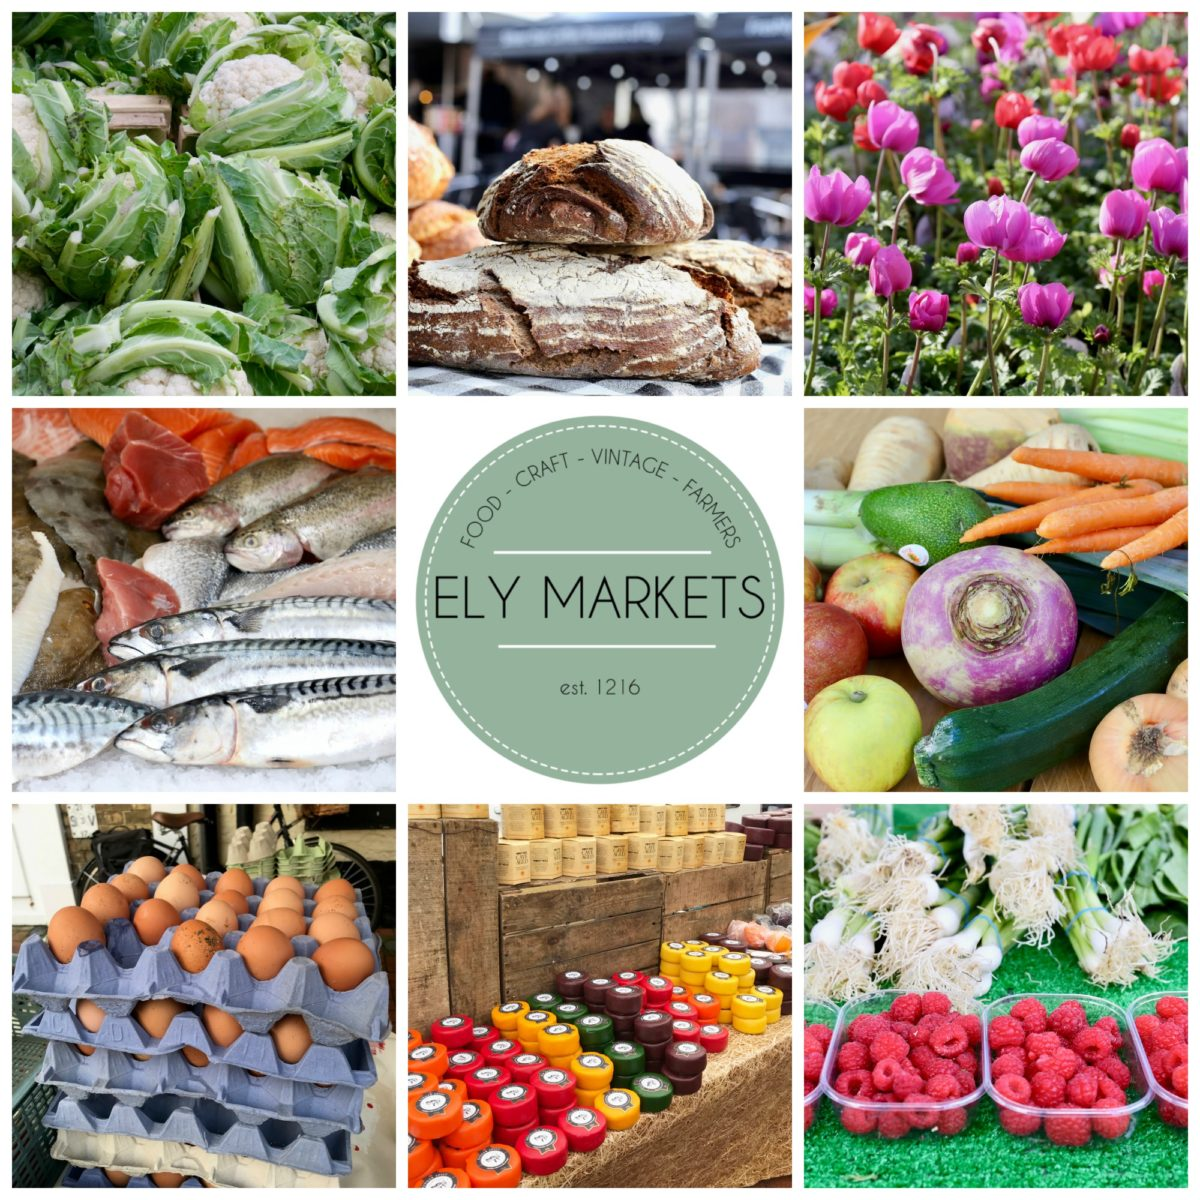 ely-markets-to-reopen